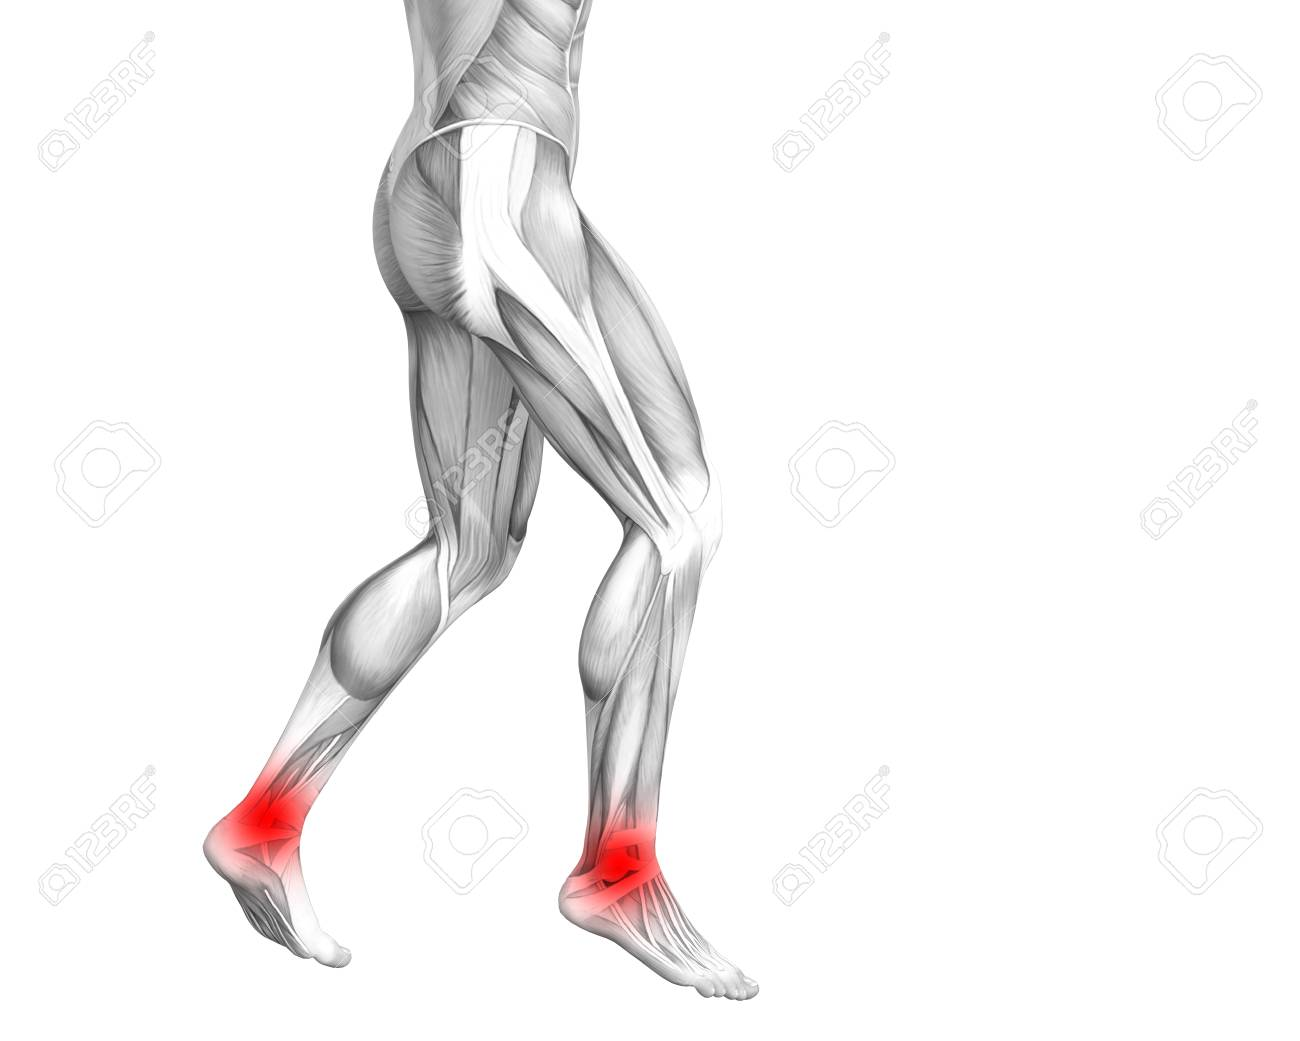 Conceptual Ankle Human Anatomy With Red Hot Spot Inflammation